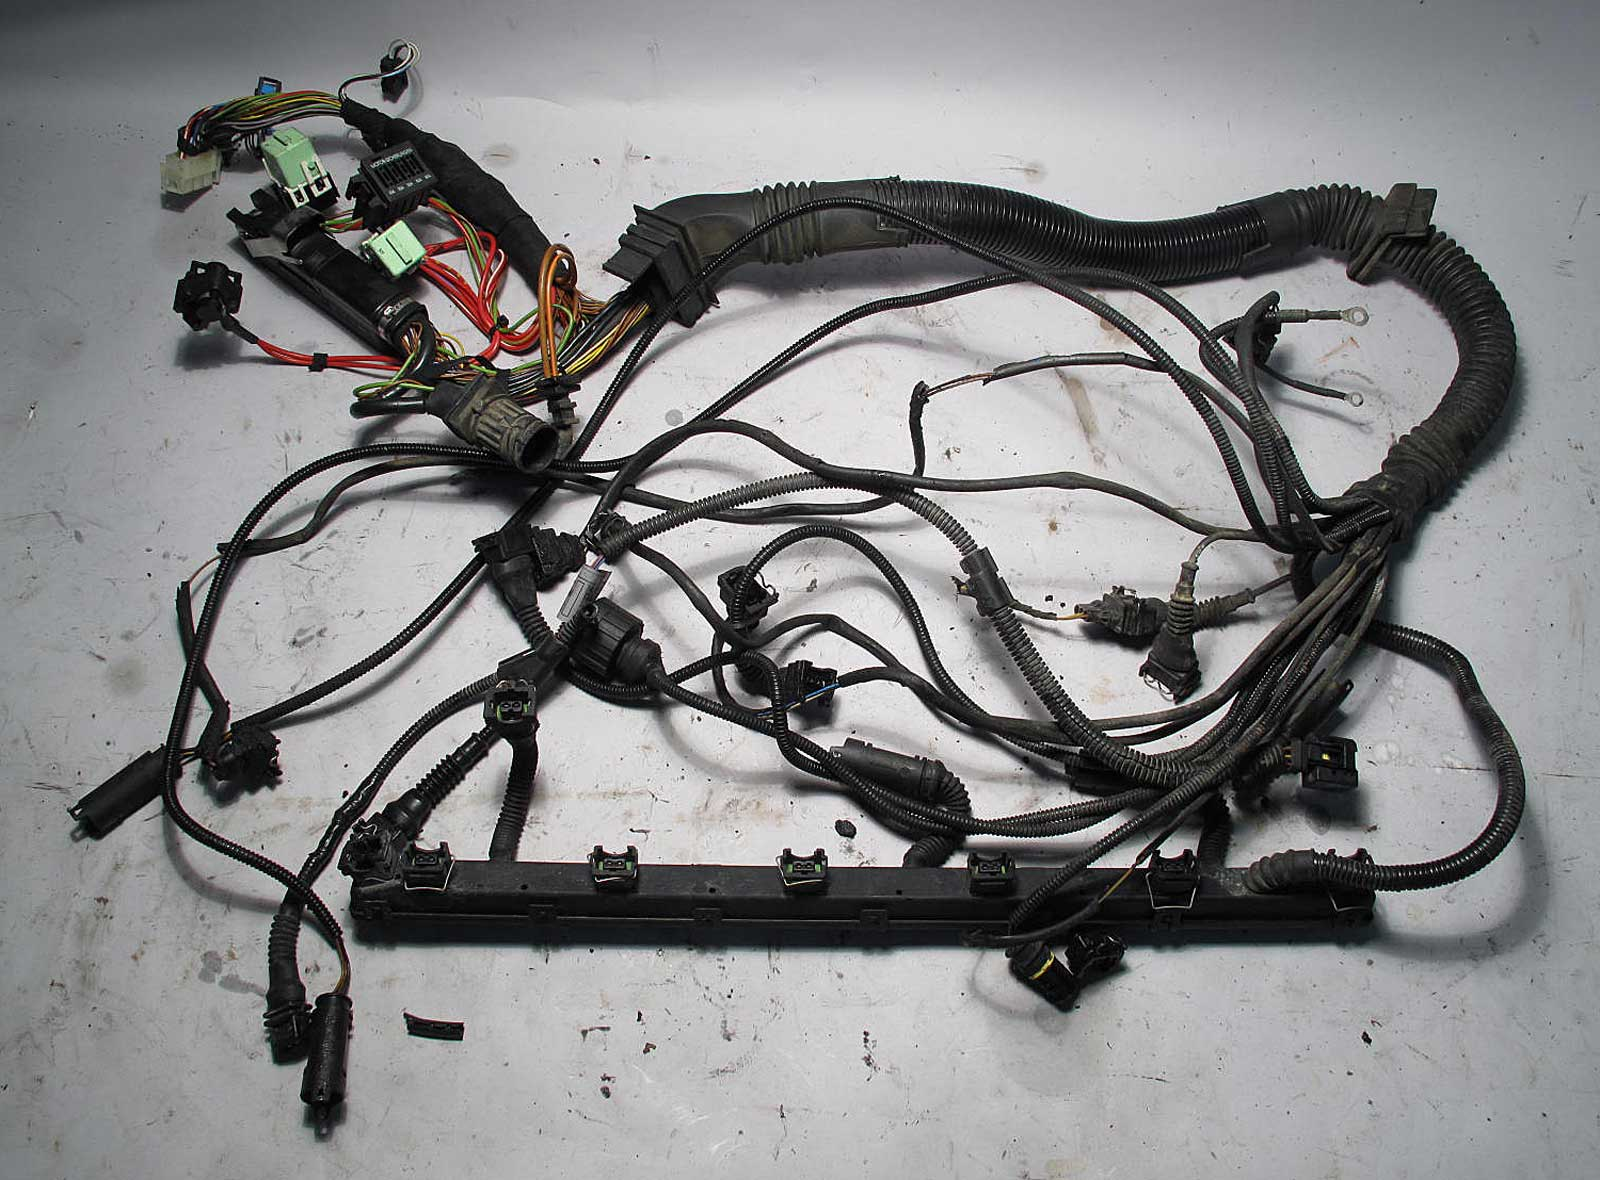 inv_004585 bmw e39 1998 528i 5 spd manual engine wiring harness complete m52 complete engine wiring harness at crackthecode.co